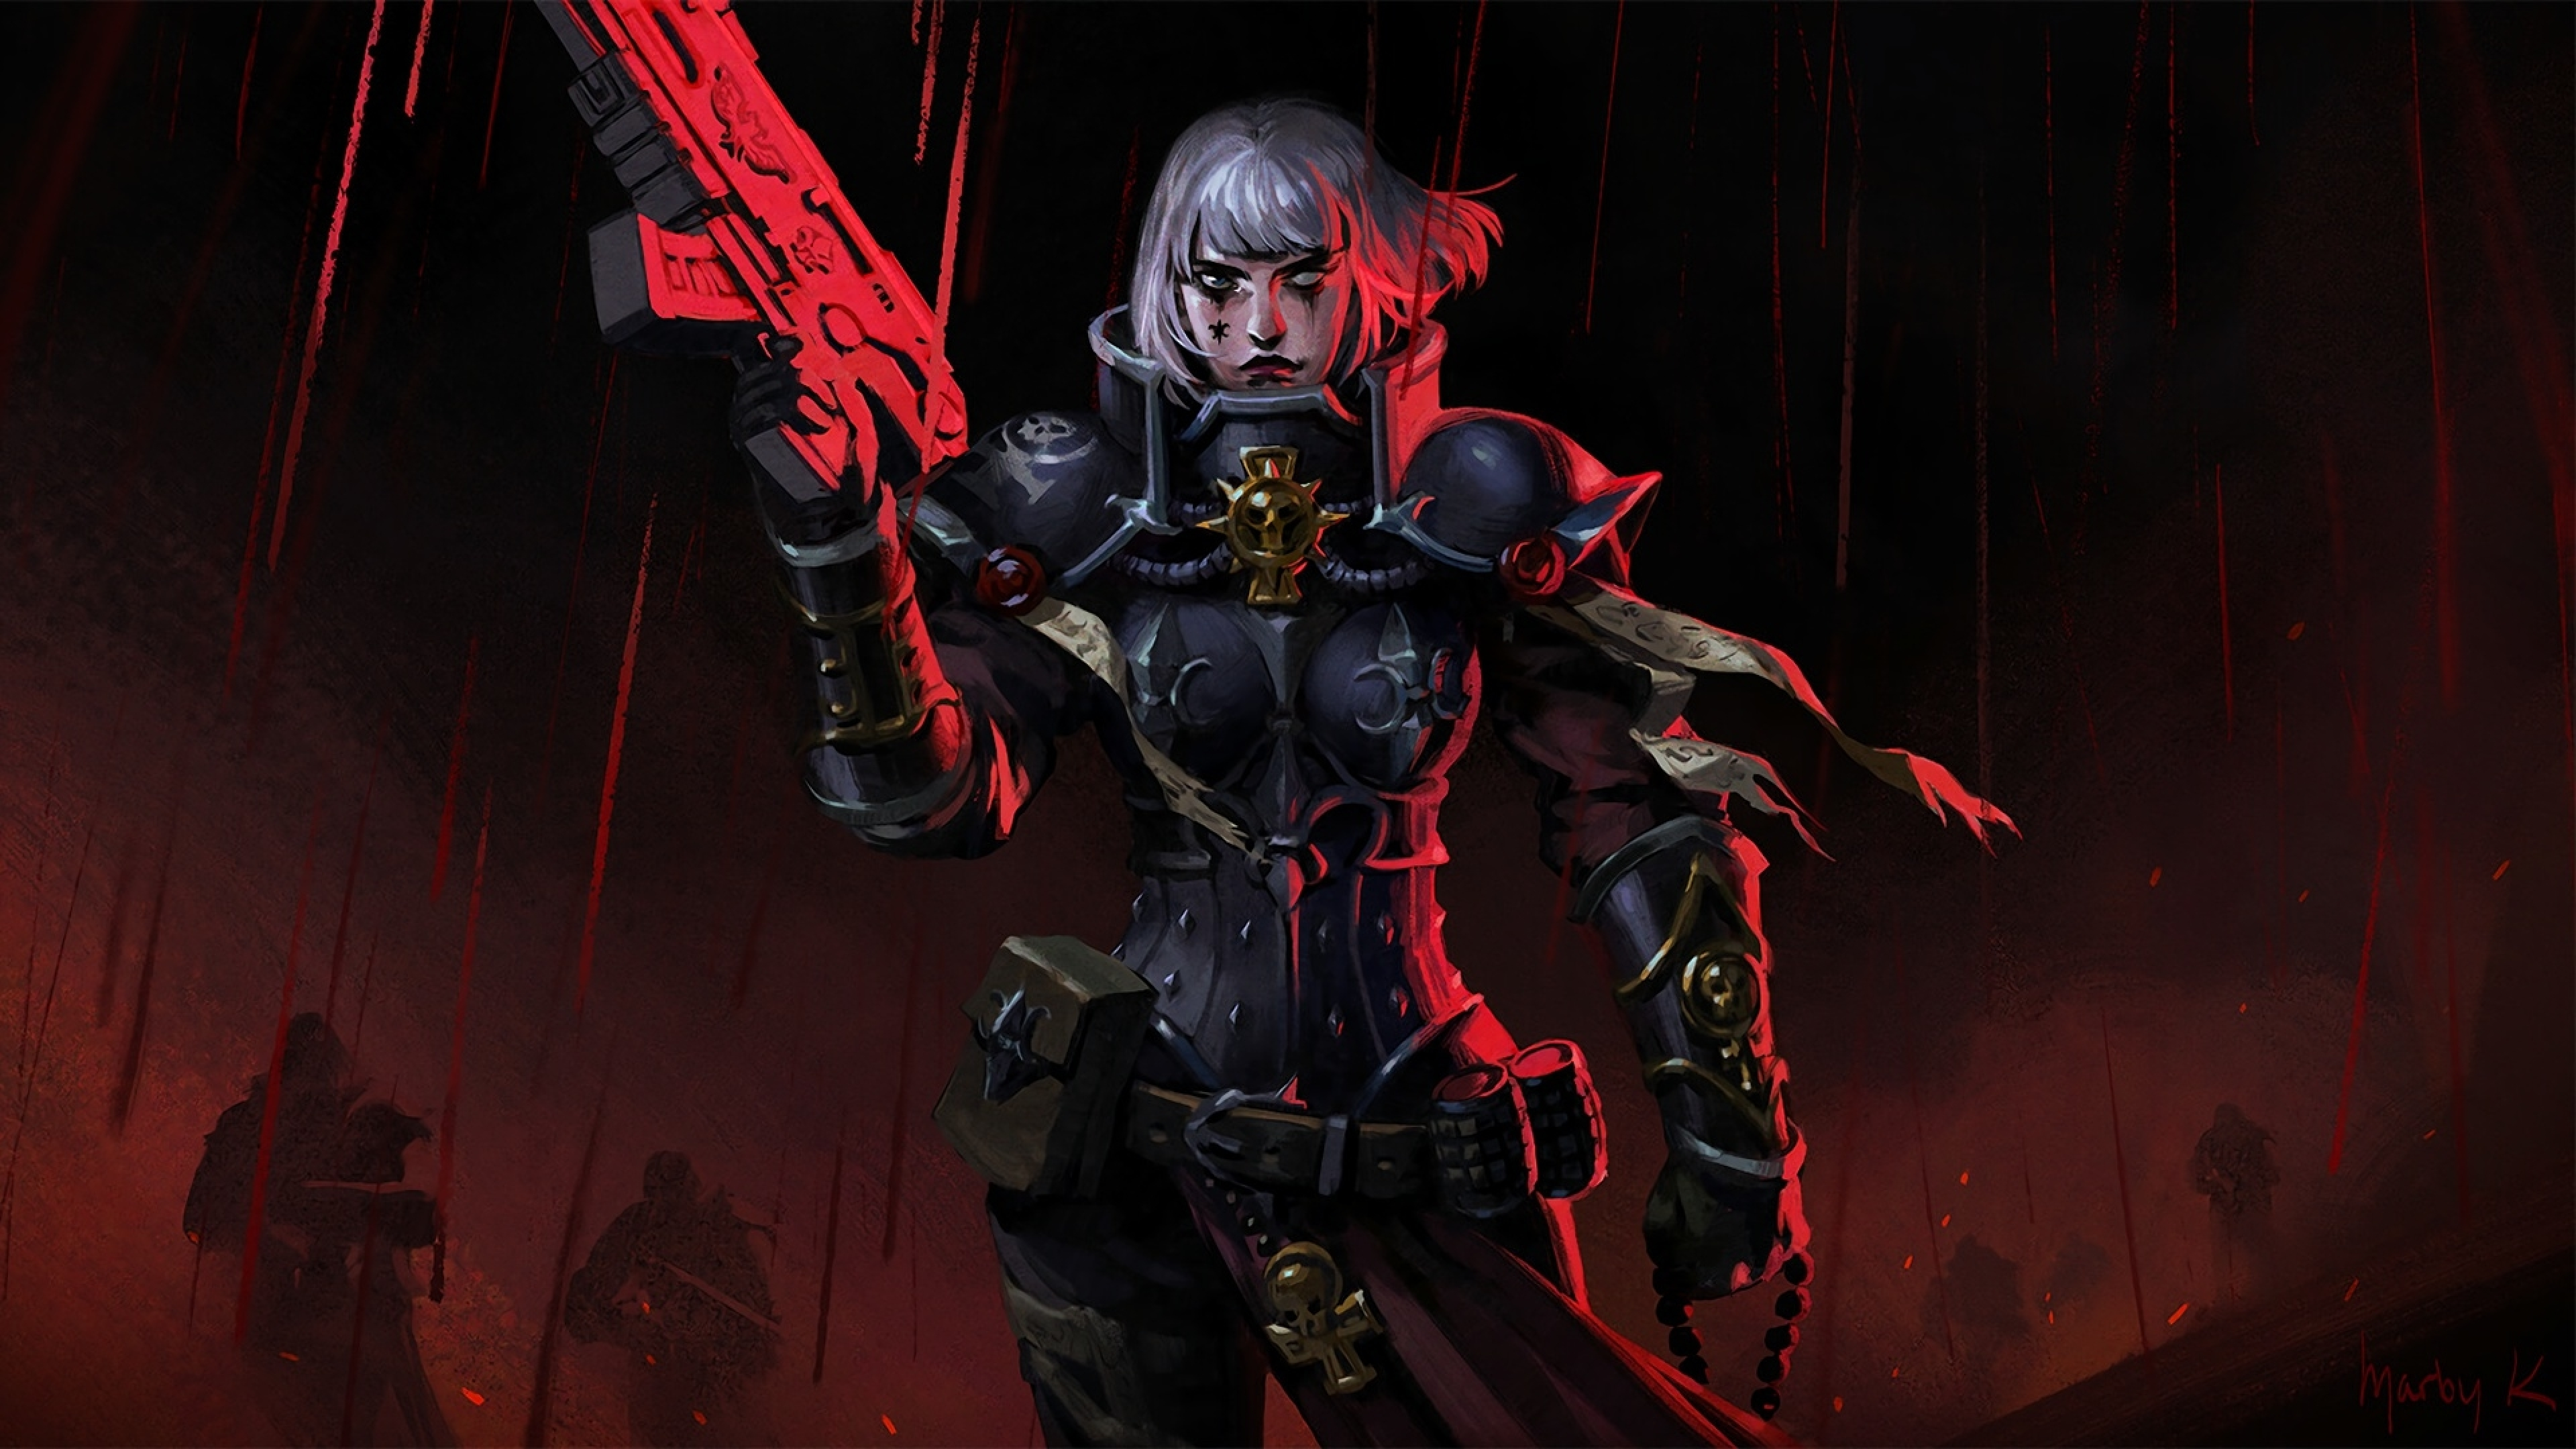 3840x2160 Sisters Of Battle Warhammer 4k Wallpaper Hd Games 4k Wallpapers Images Photos And Background